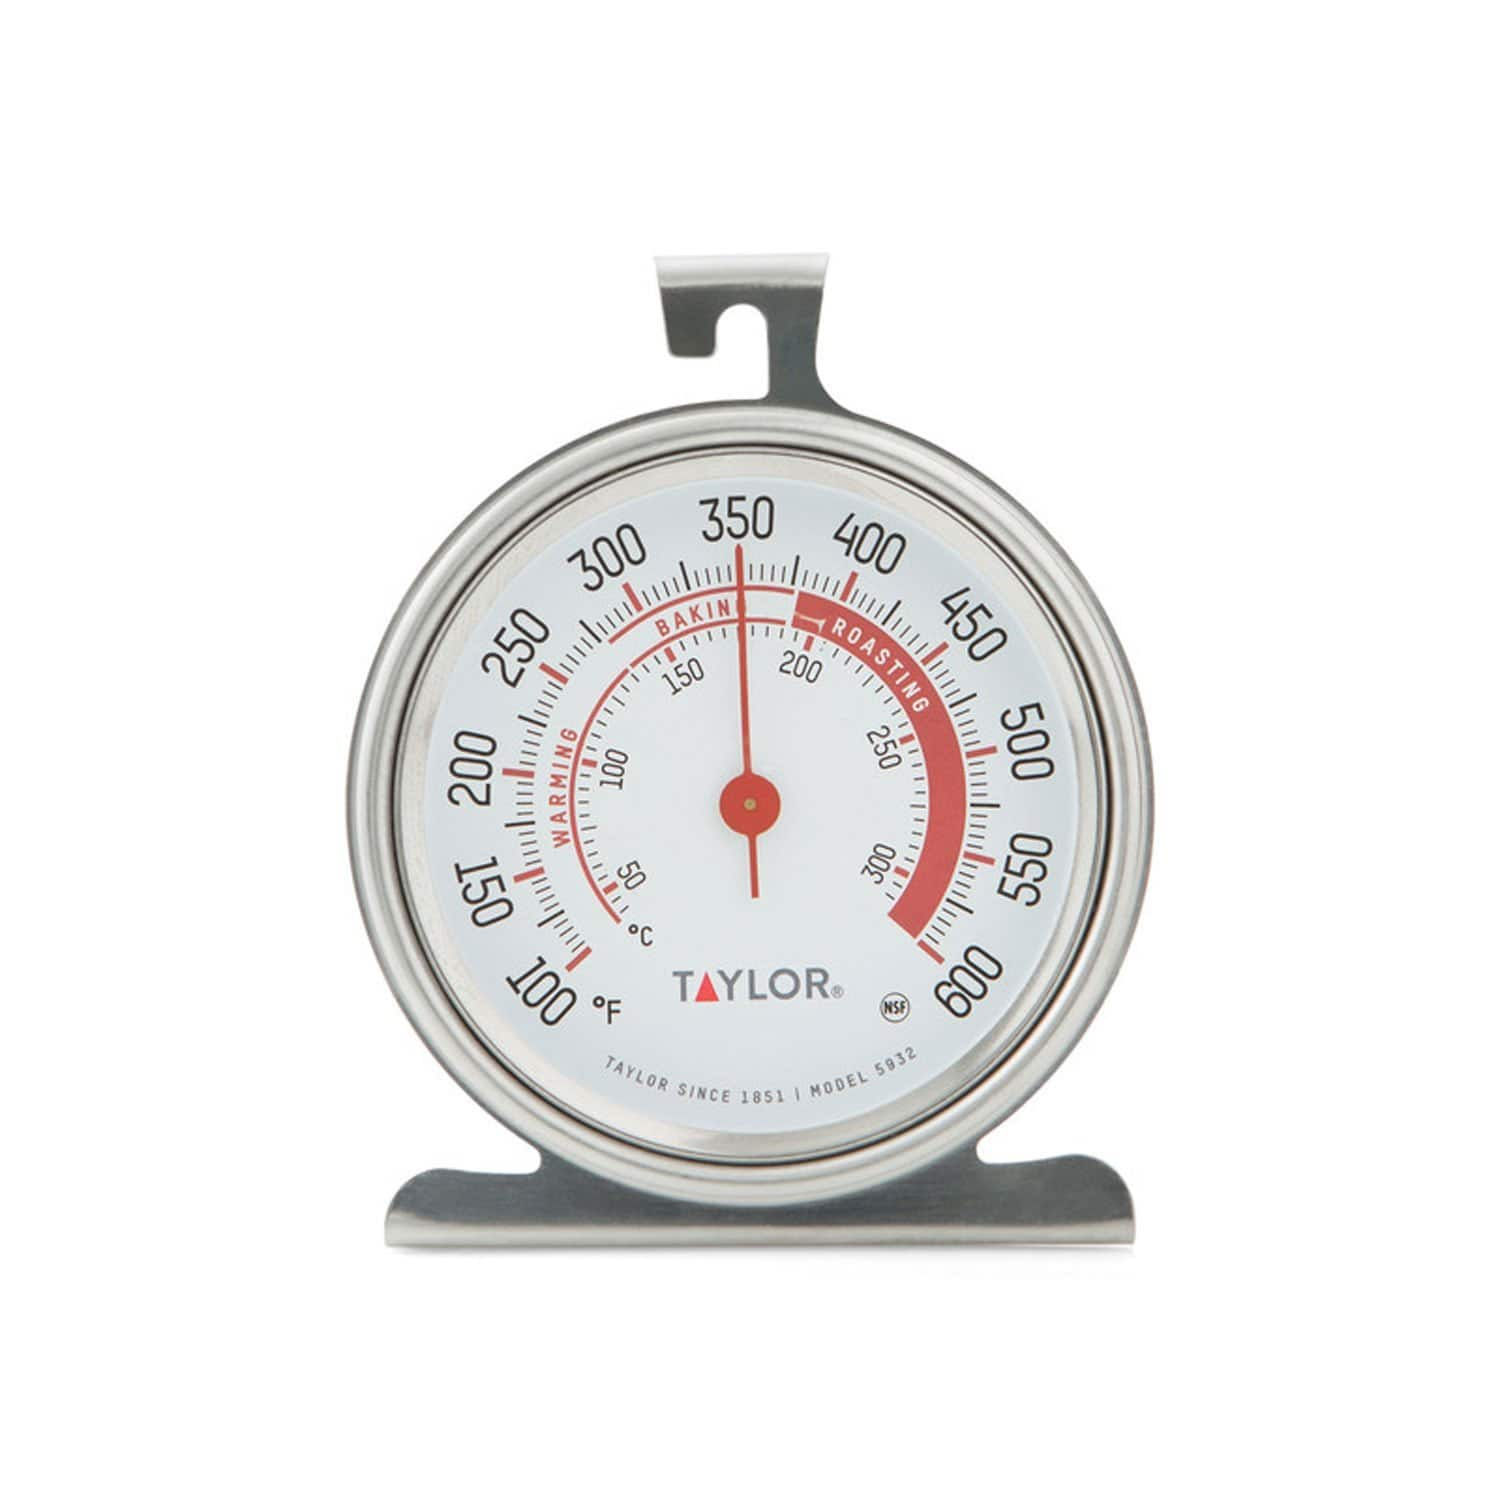 Taylor Classic Series Large Dial Oven Thermometer [Oven] $4.36+Free shipping with prime